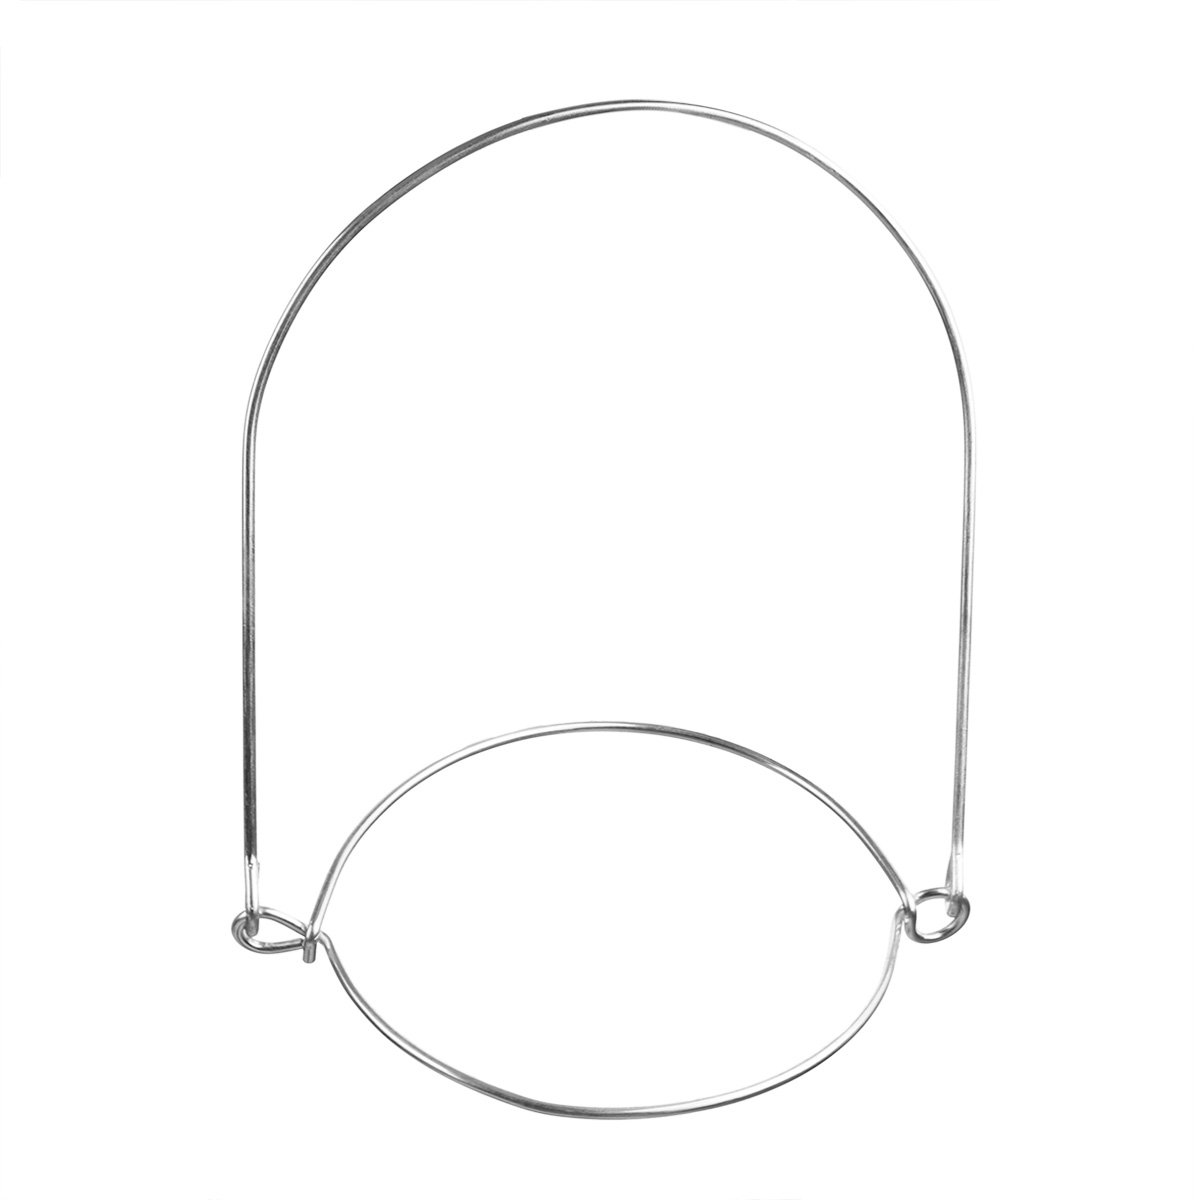 IEFIEL Stainless Steel Wire Handles Jar Hanger for Regular Mouth Mason Ball Canning Night Lamp Solar Light 6 Pack One Size